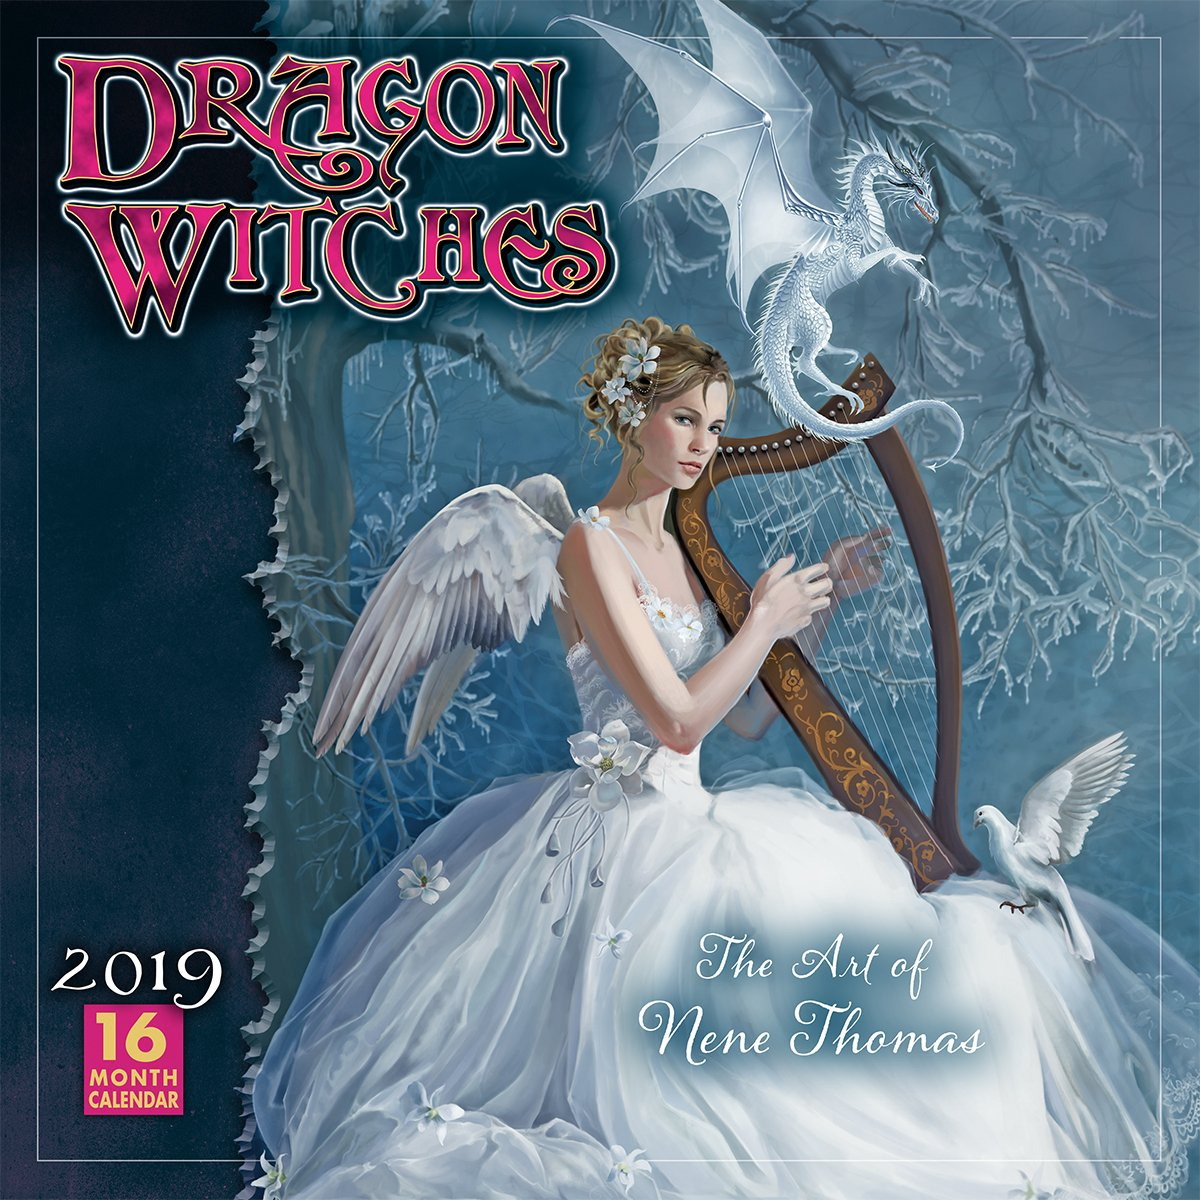 Dragon Witches The Art of Nene Thomas 2019 Wall Calendar, 12 x 12, (CA-0382)